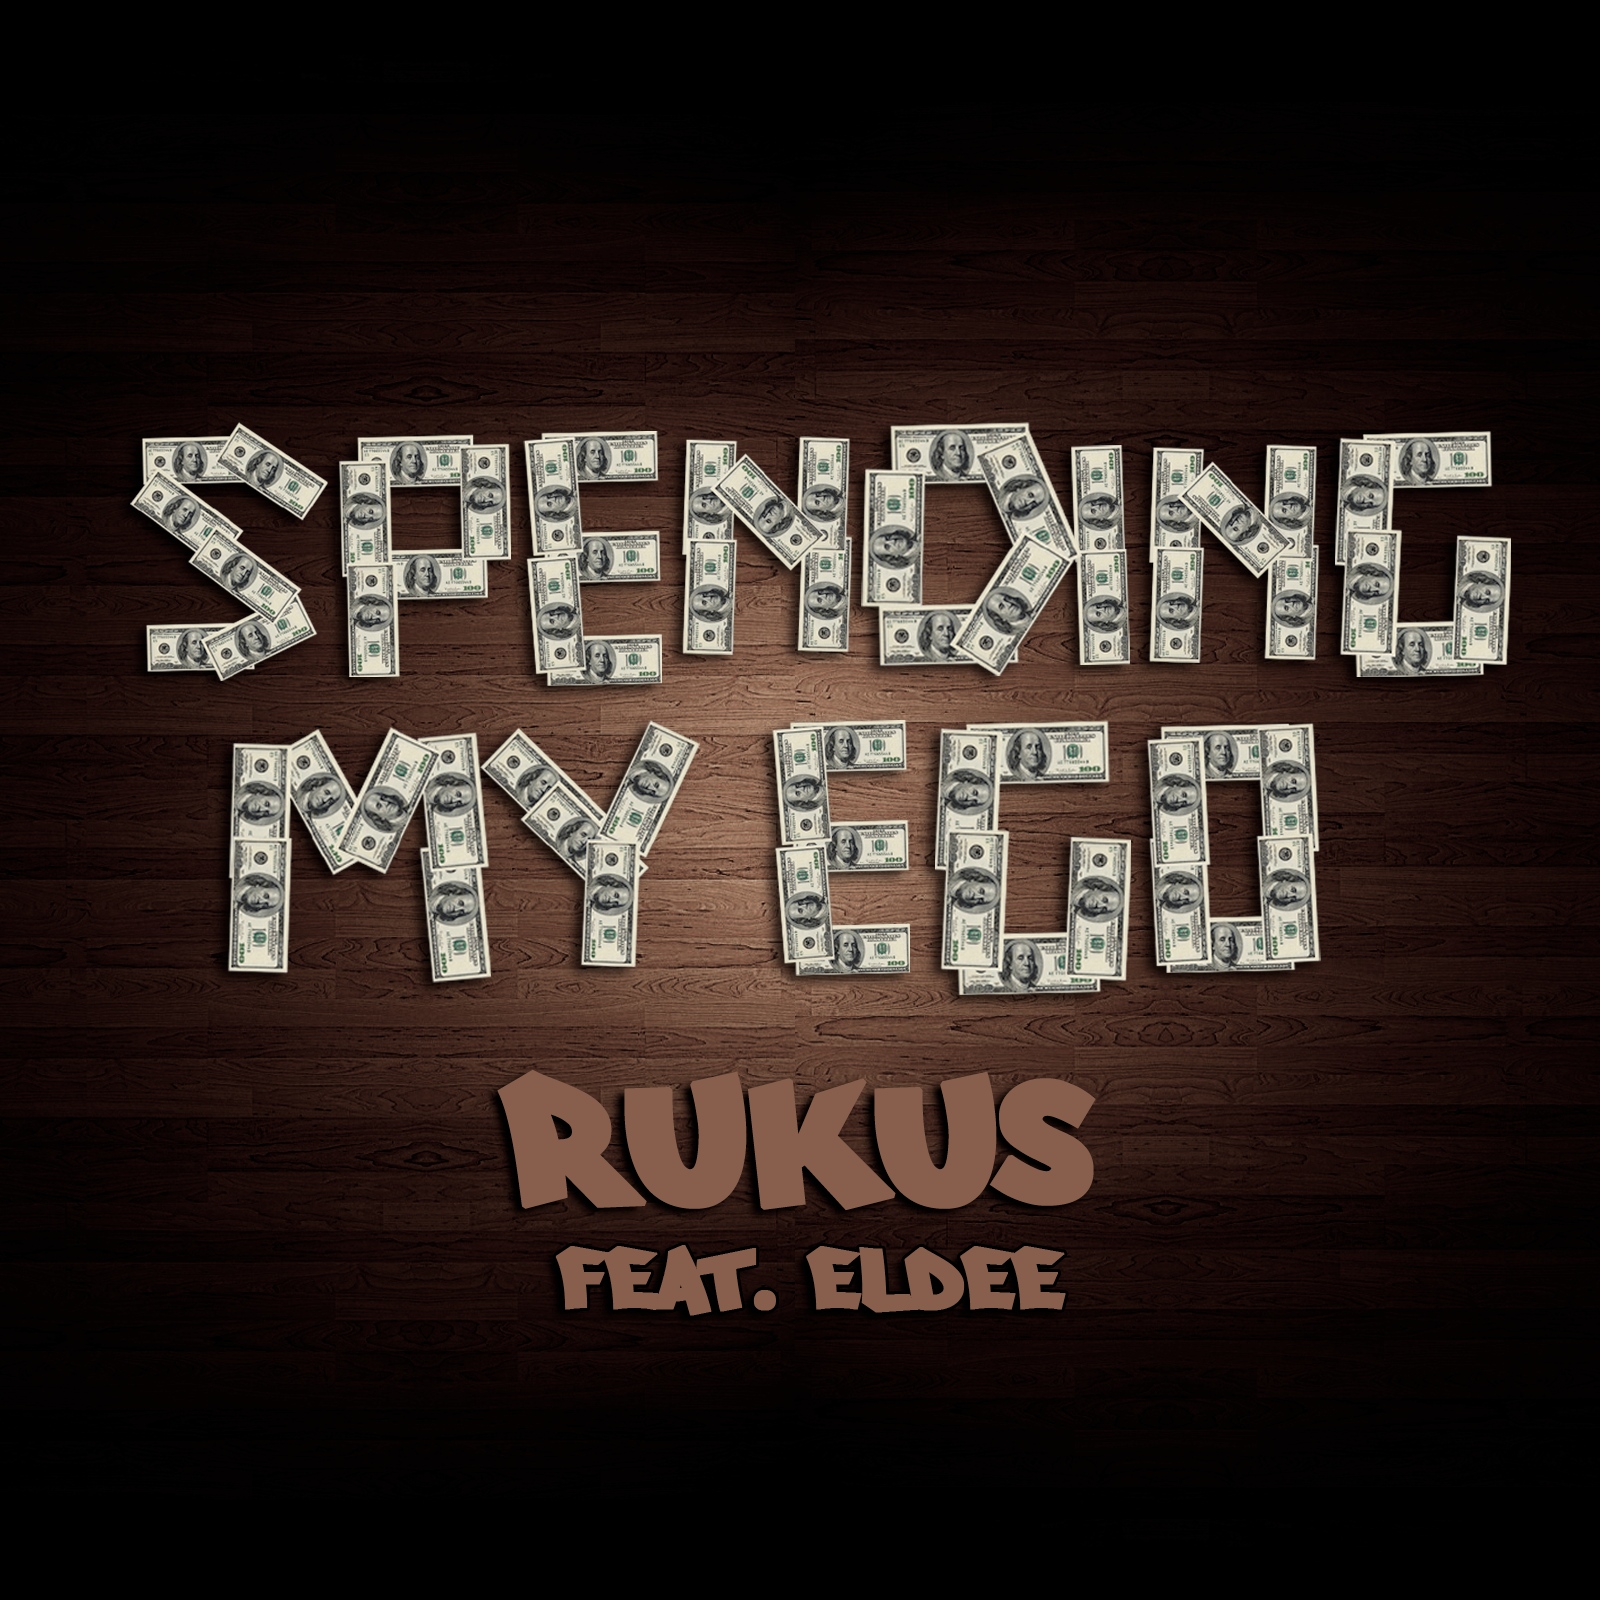 Rukus spending-my-ego-cover